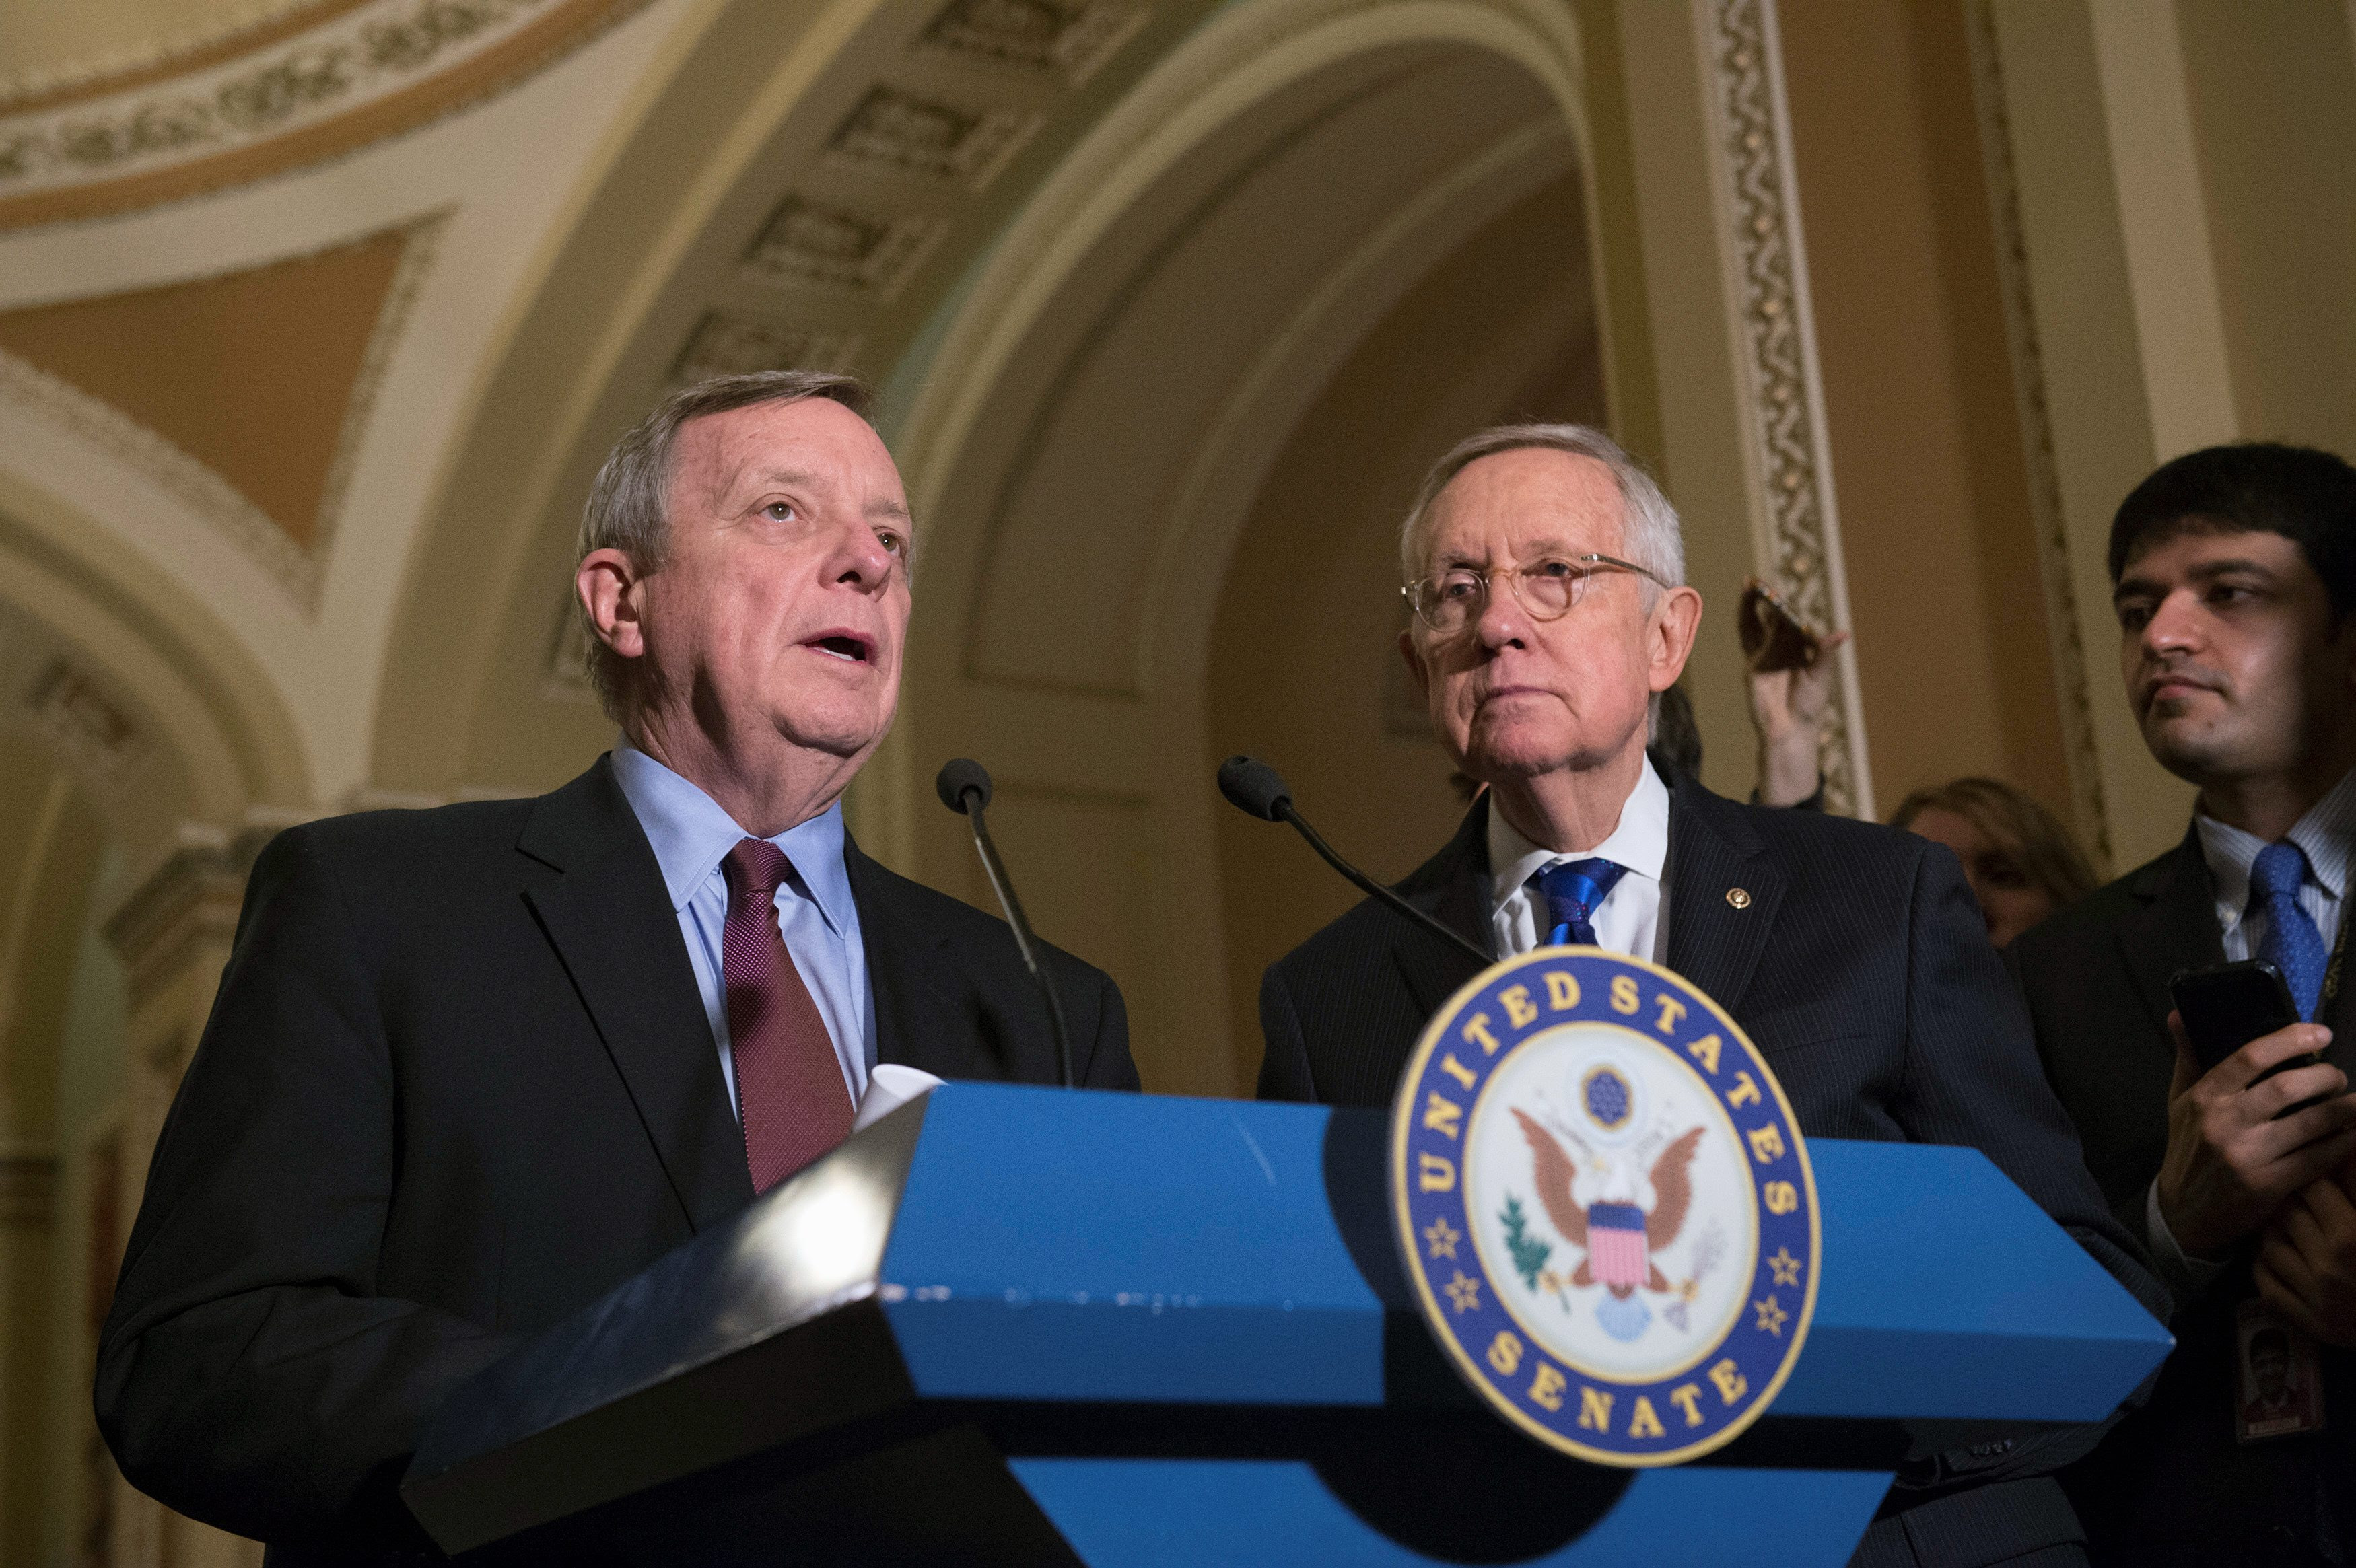 Durbin to Senate Republicans: 'Let's sit down together' on ObamaCare Overhaul